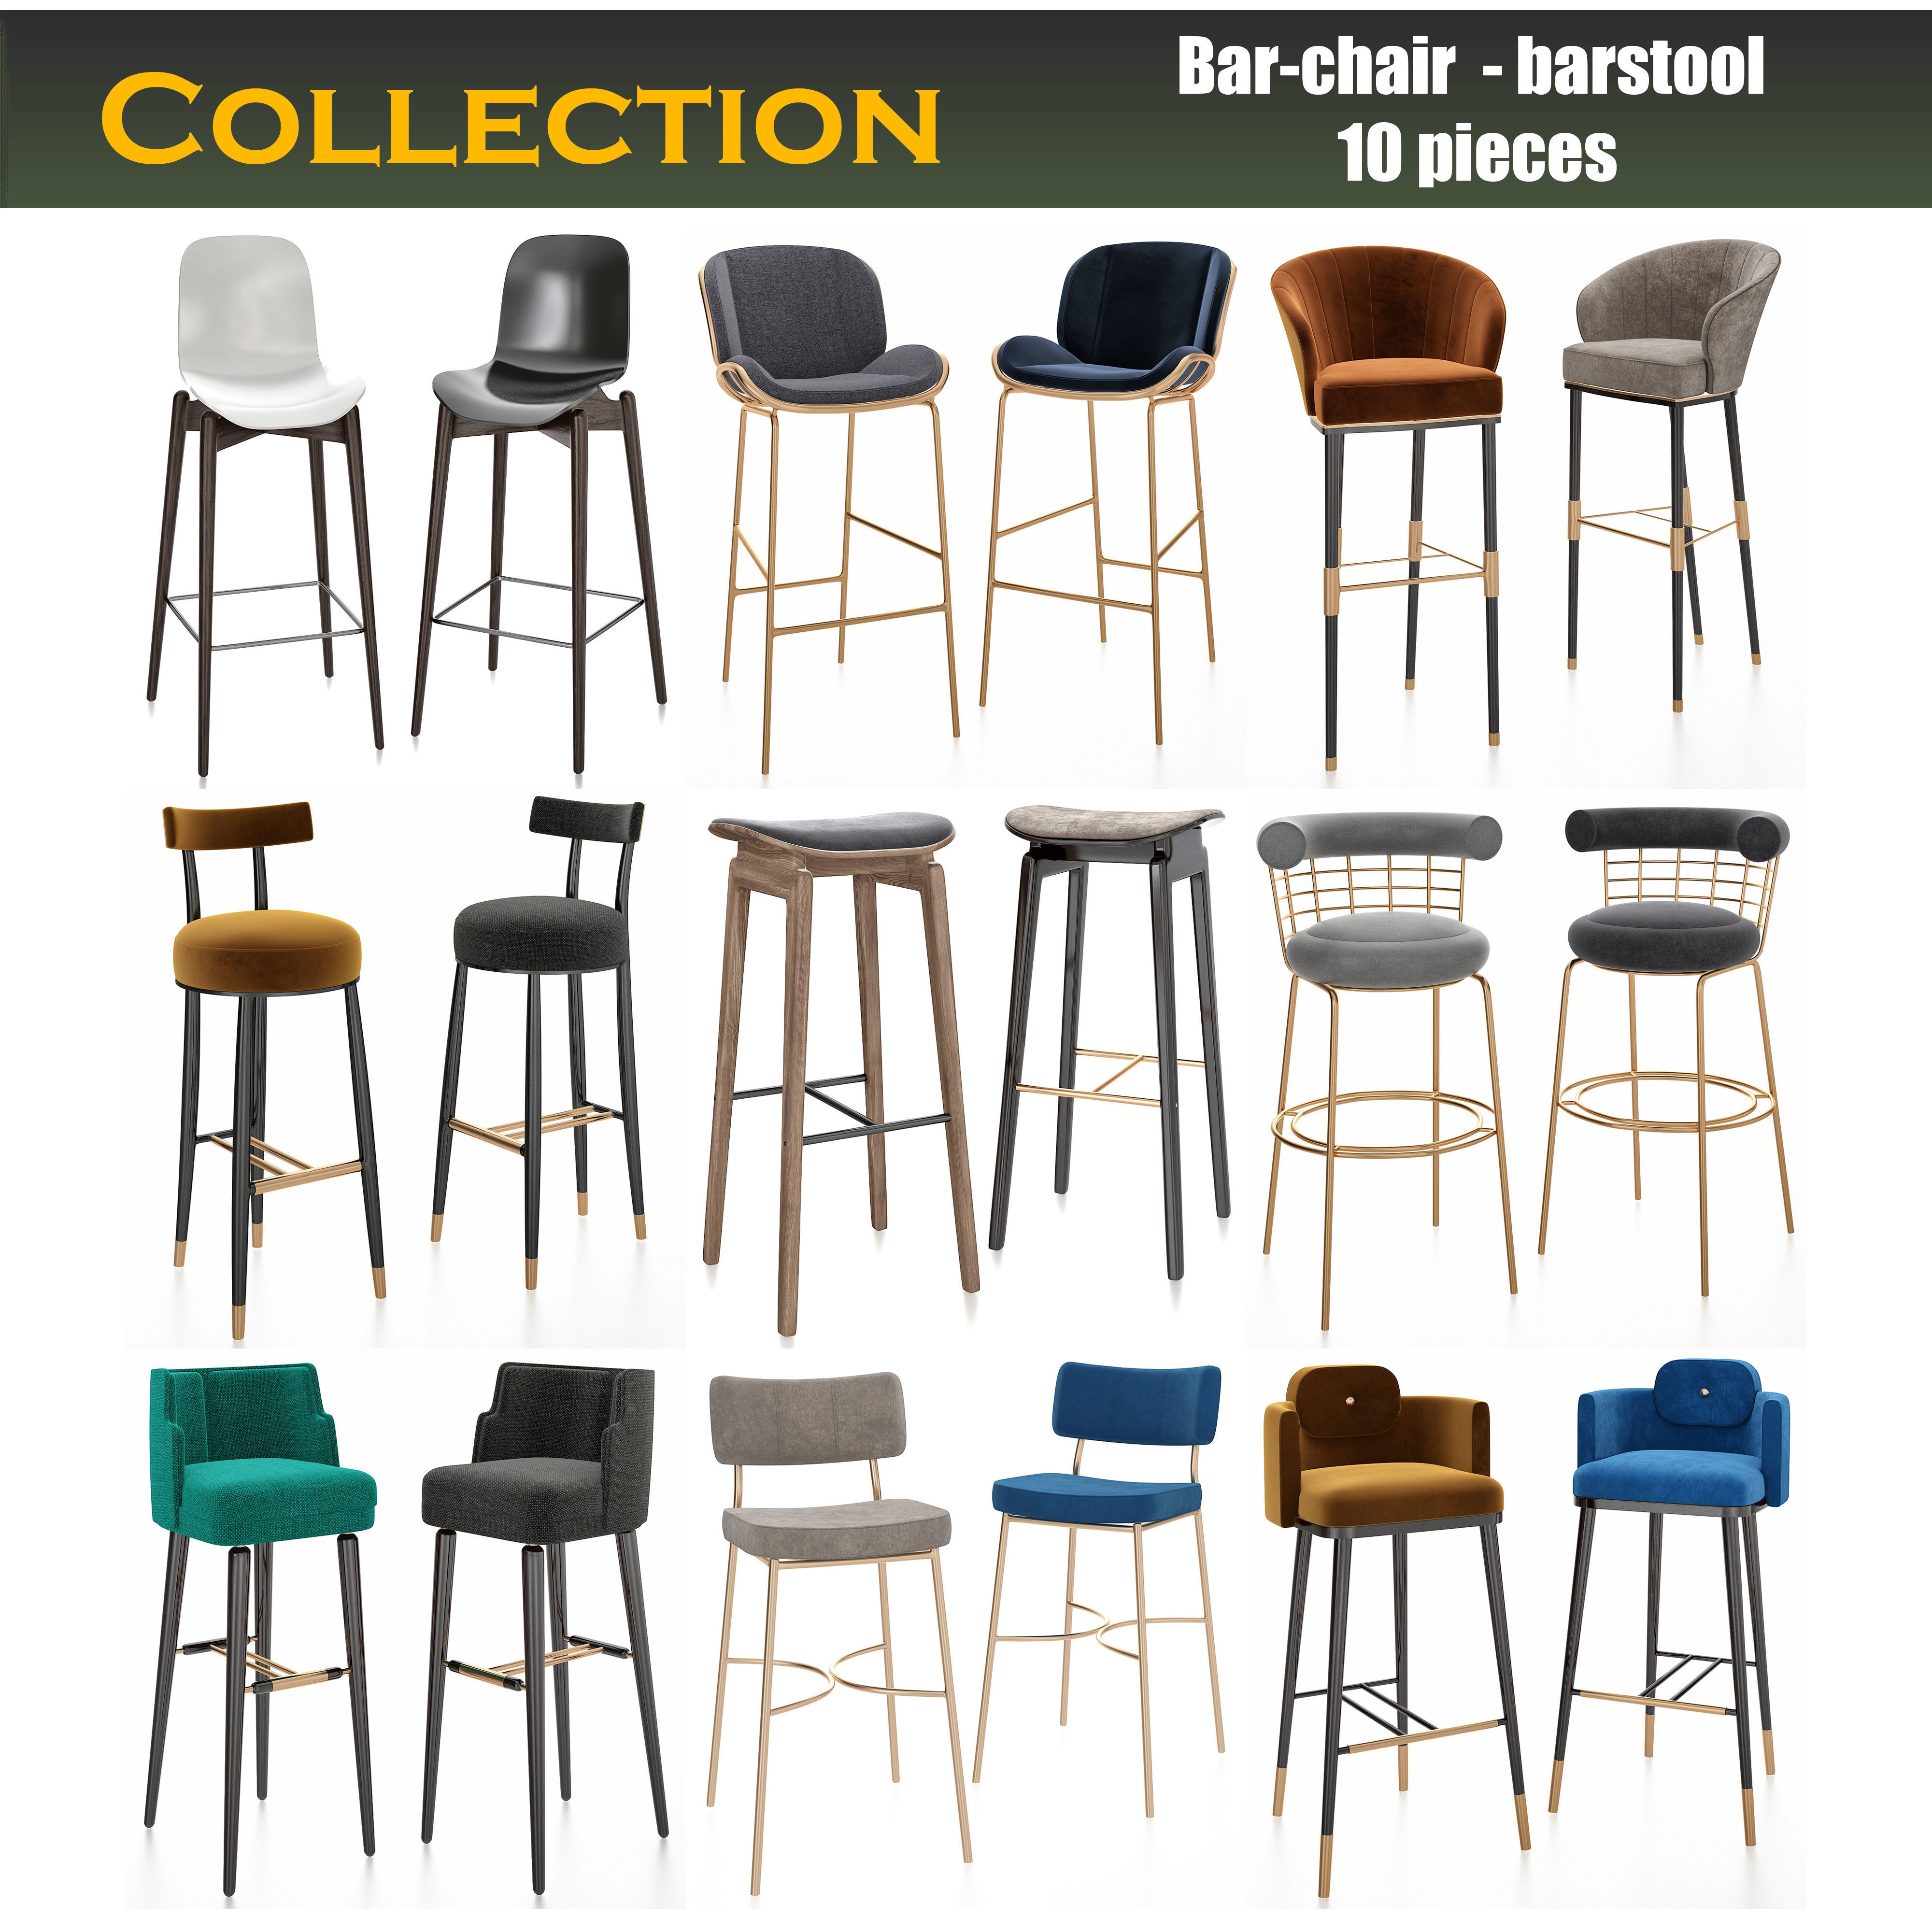 Bar chair 4d models collection 4 pieces